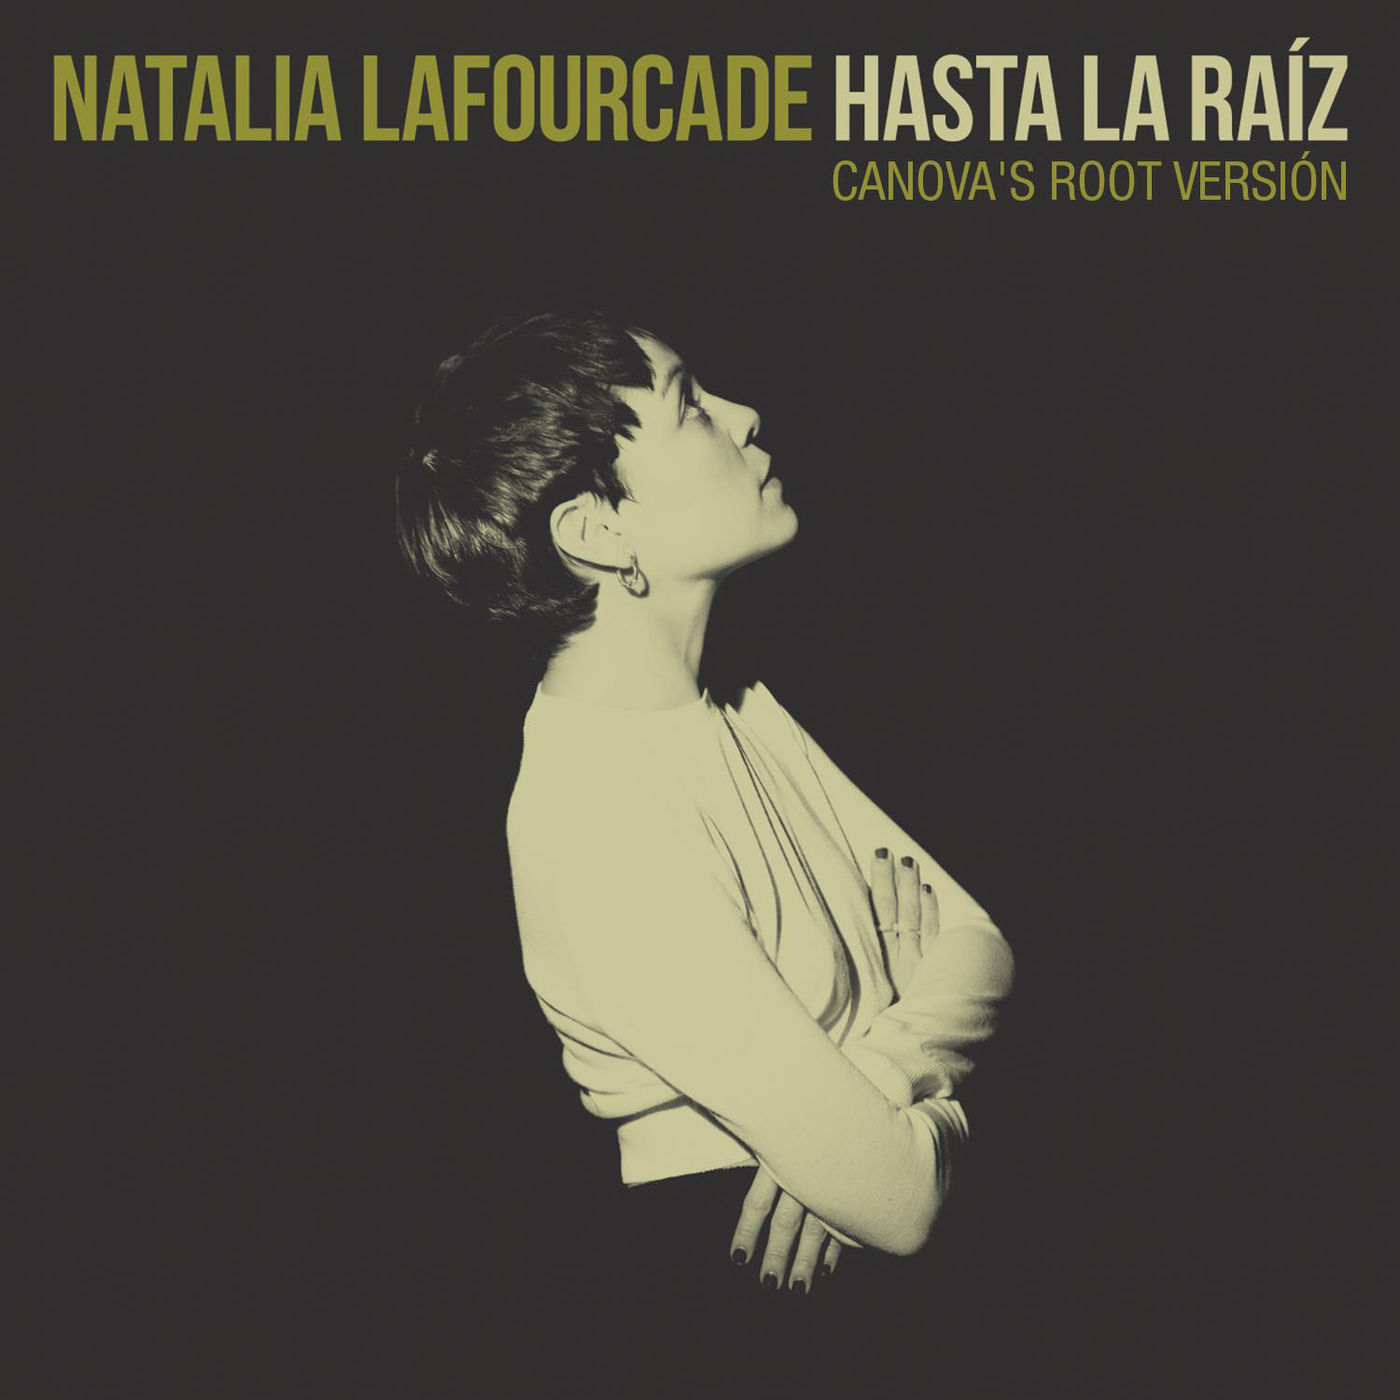 Hasta la raiz Canova - Single iTunes